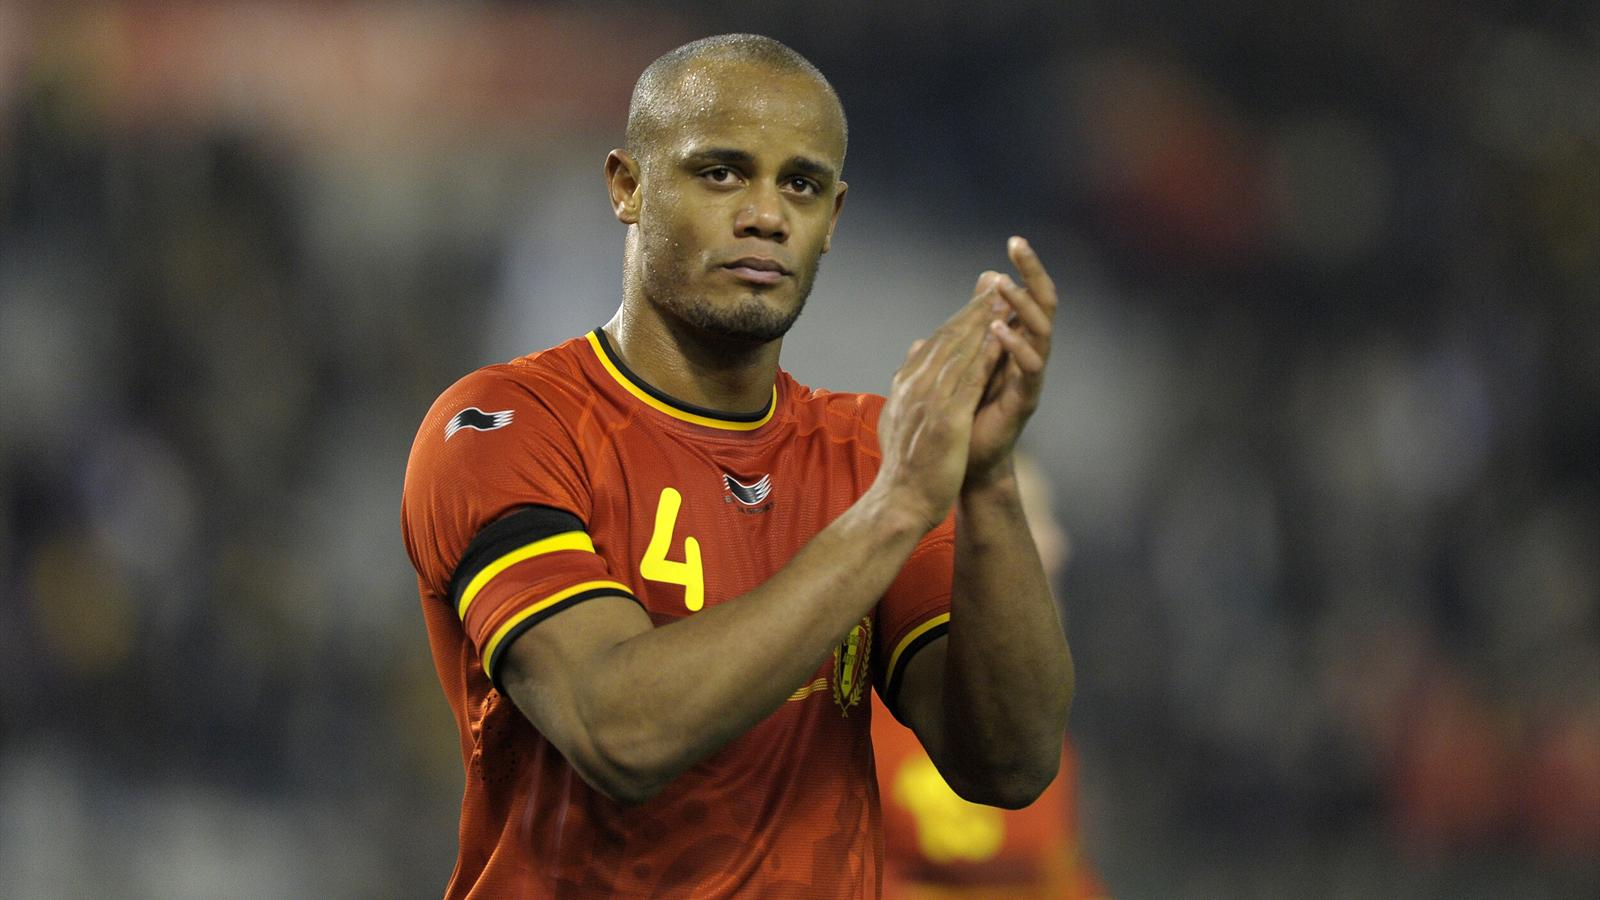 Vincent Kompany fit to play for Belgium on Tuesday Euro 2016